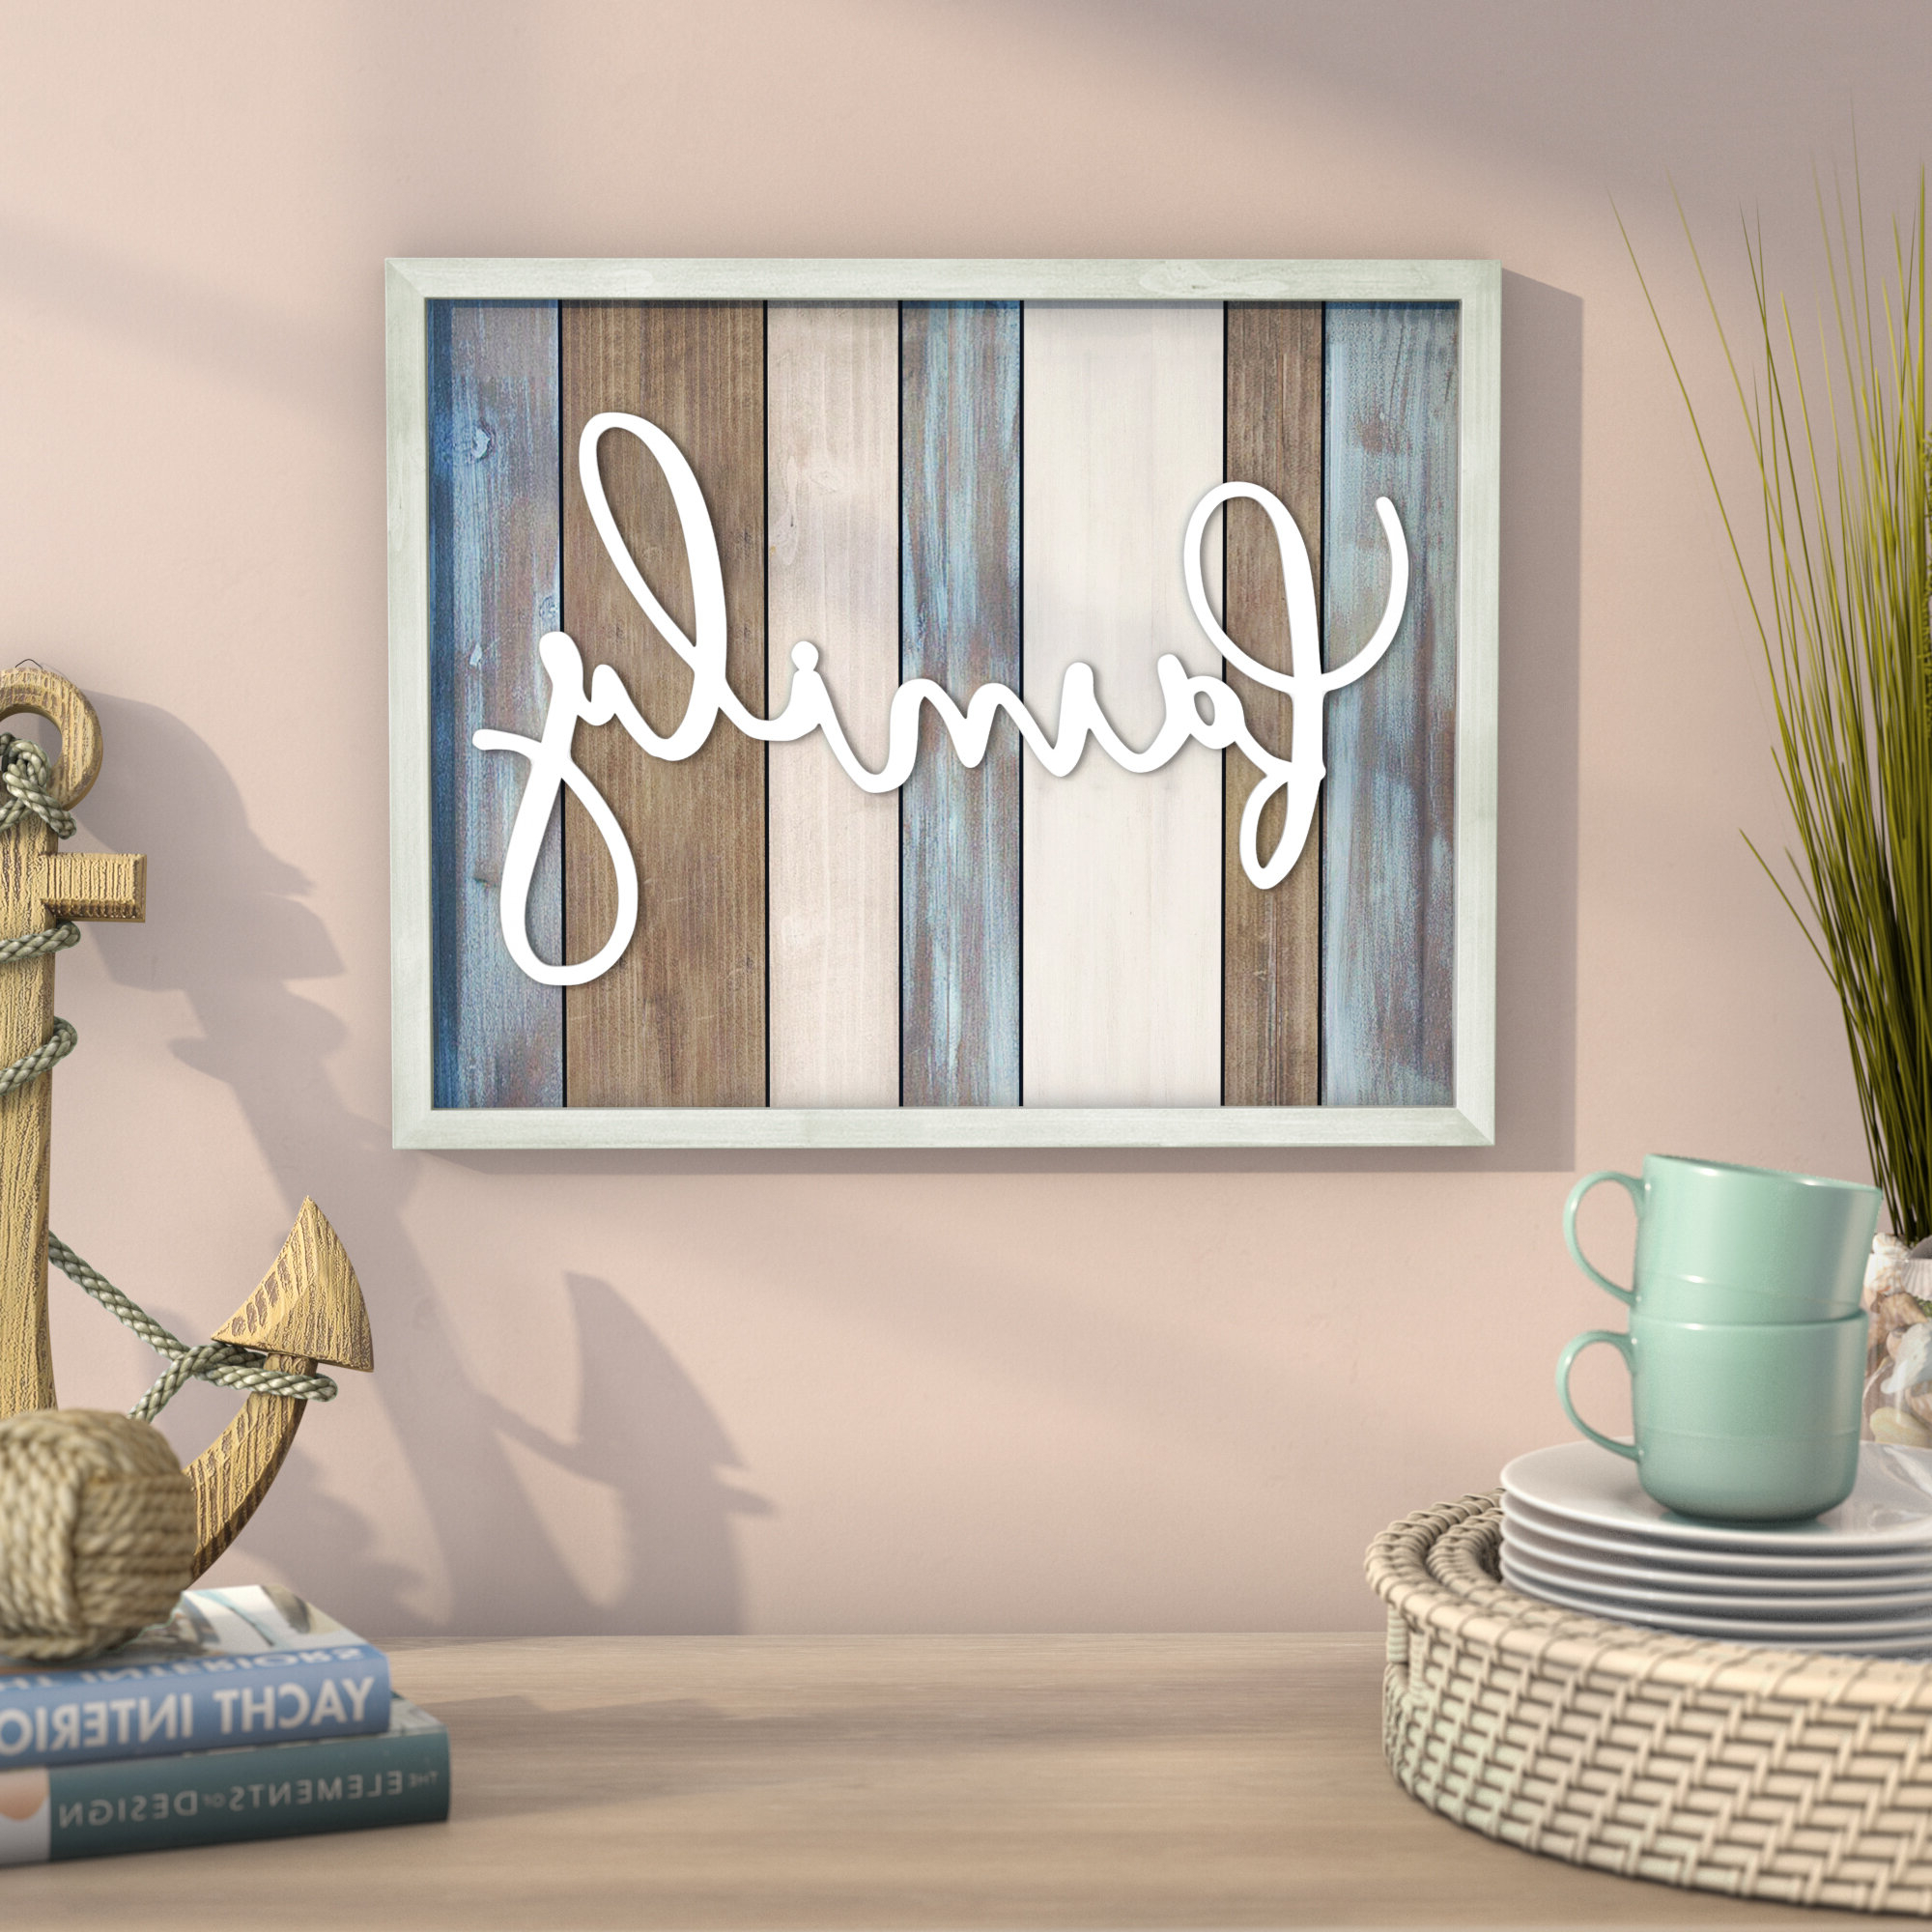 Featured Photo of Family Wood Wall Décor By Highland Dunes